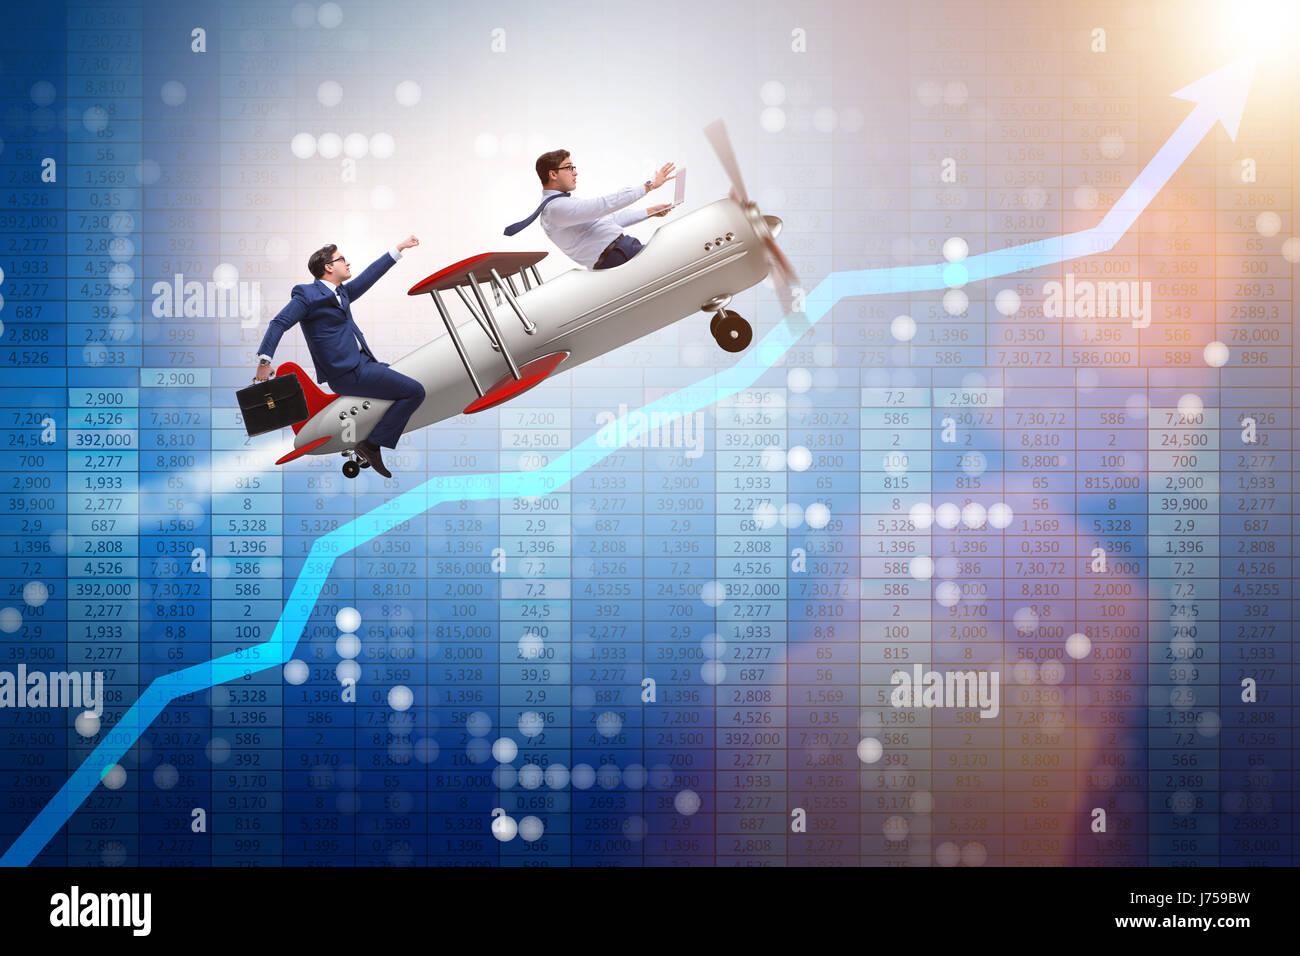 hight resolution of businessman flying on vintage old airplane stock image